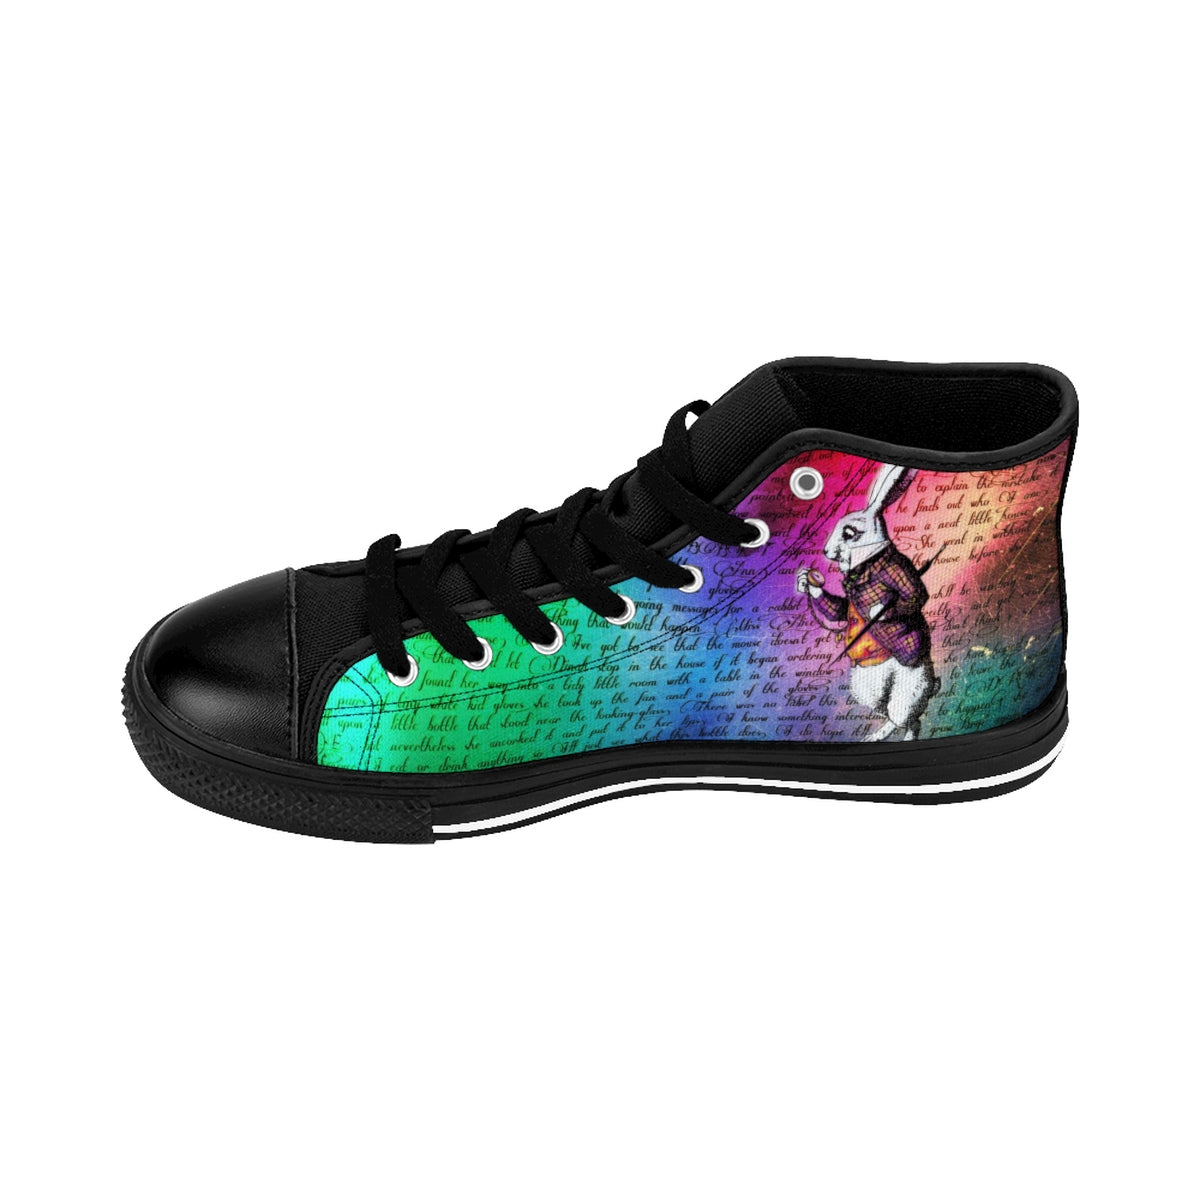 White Rabbit Men's Sneakers-Starry Meadows